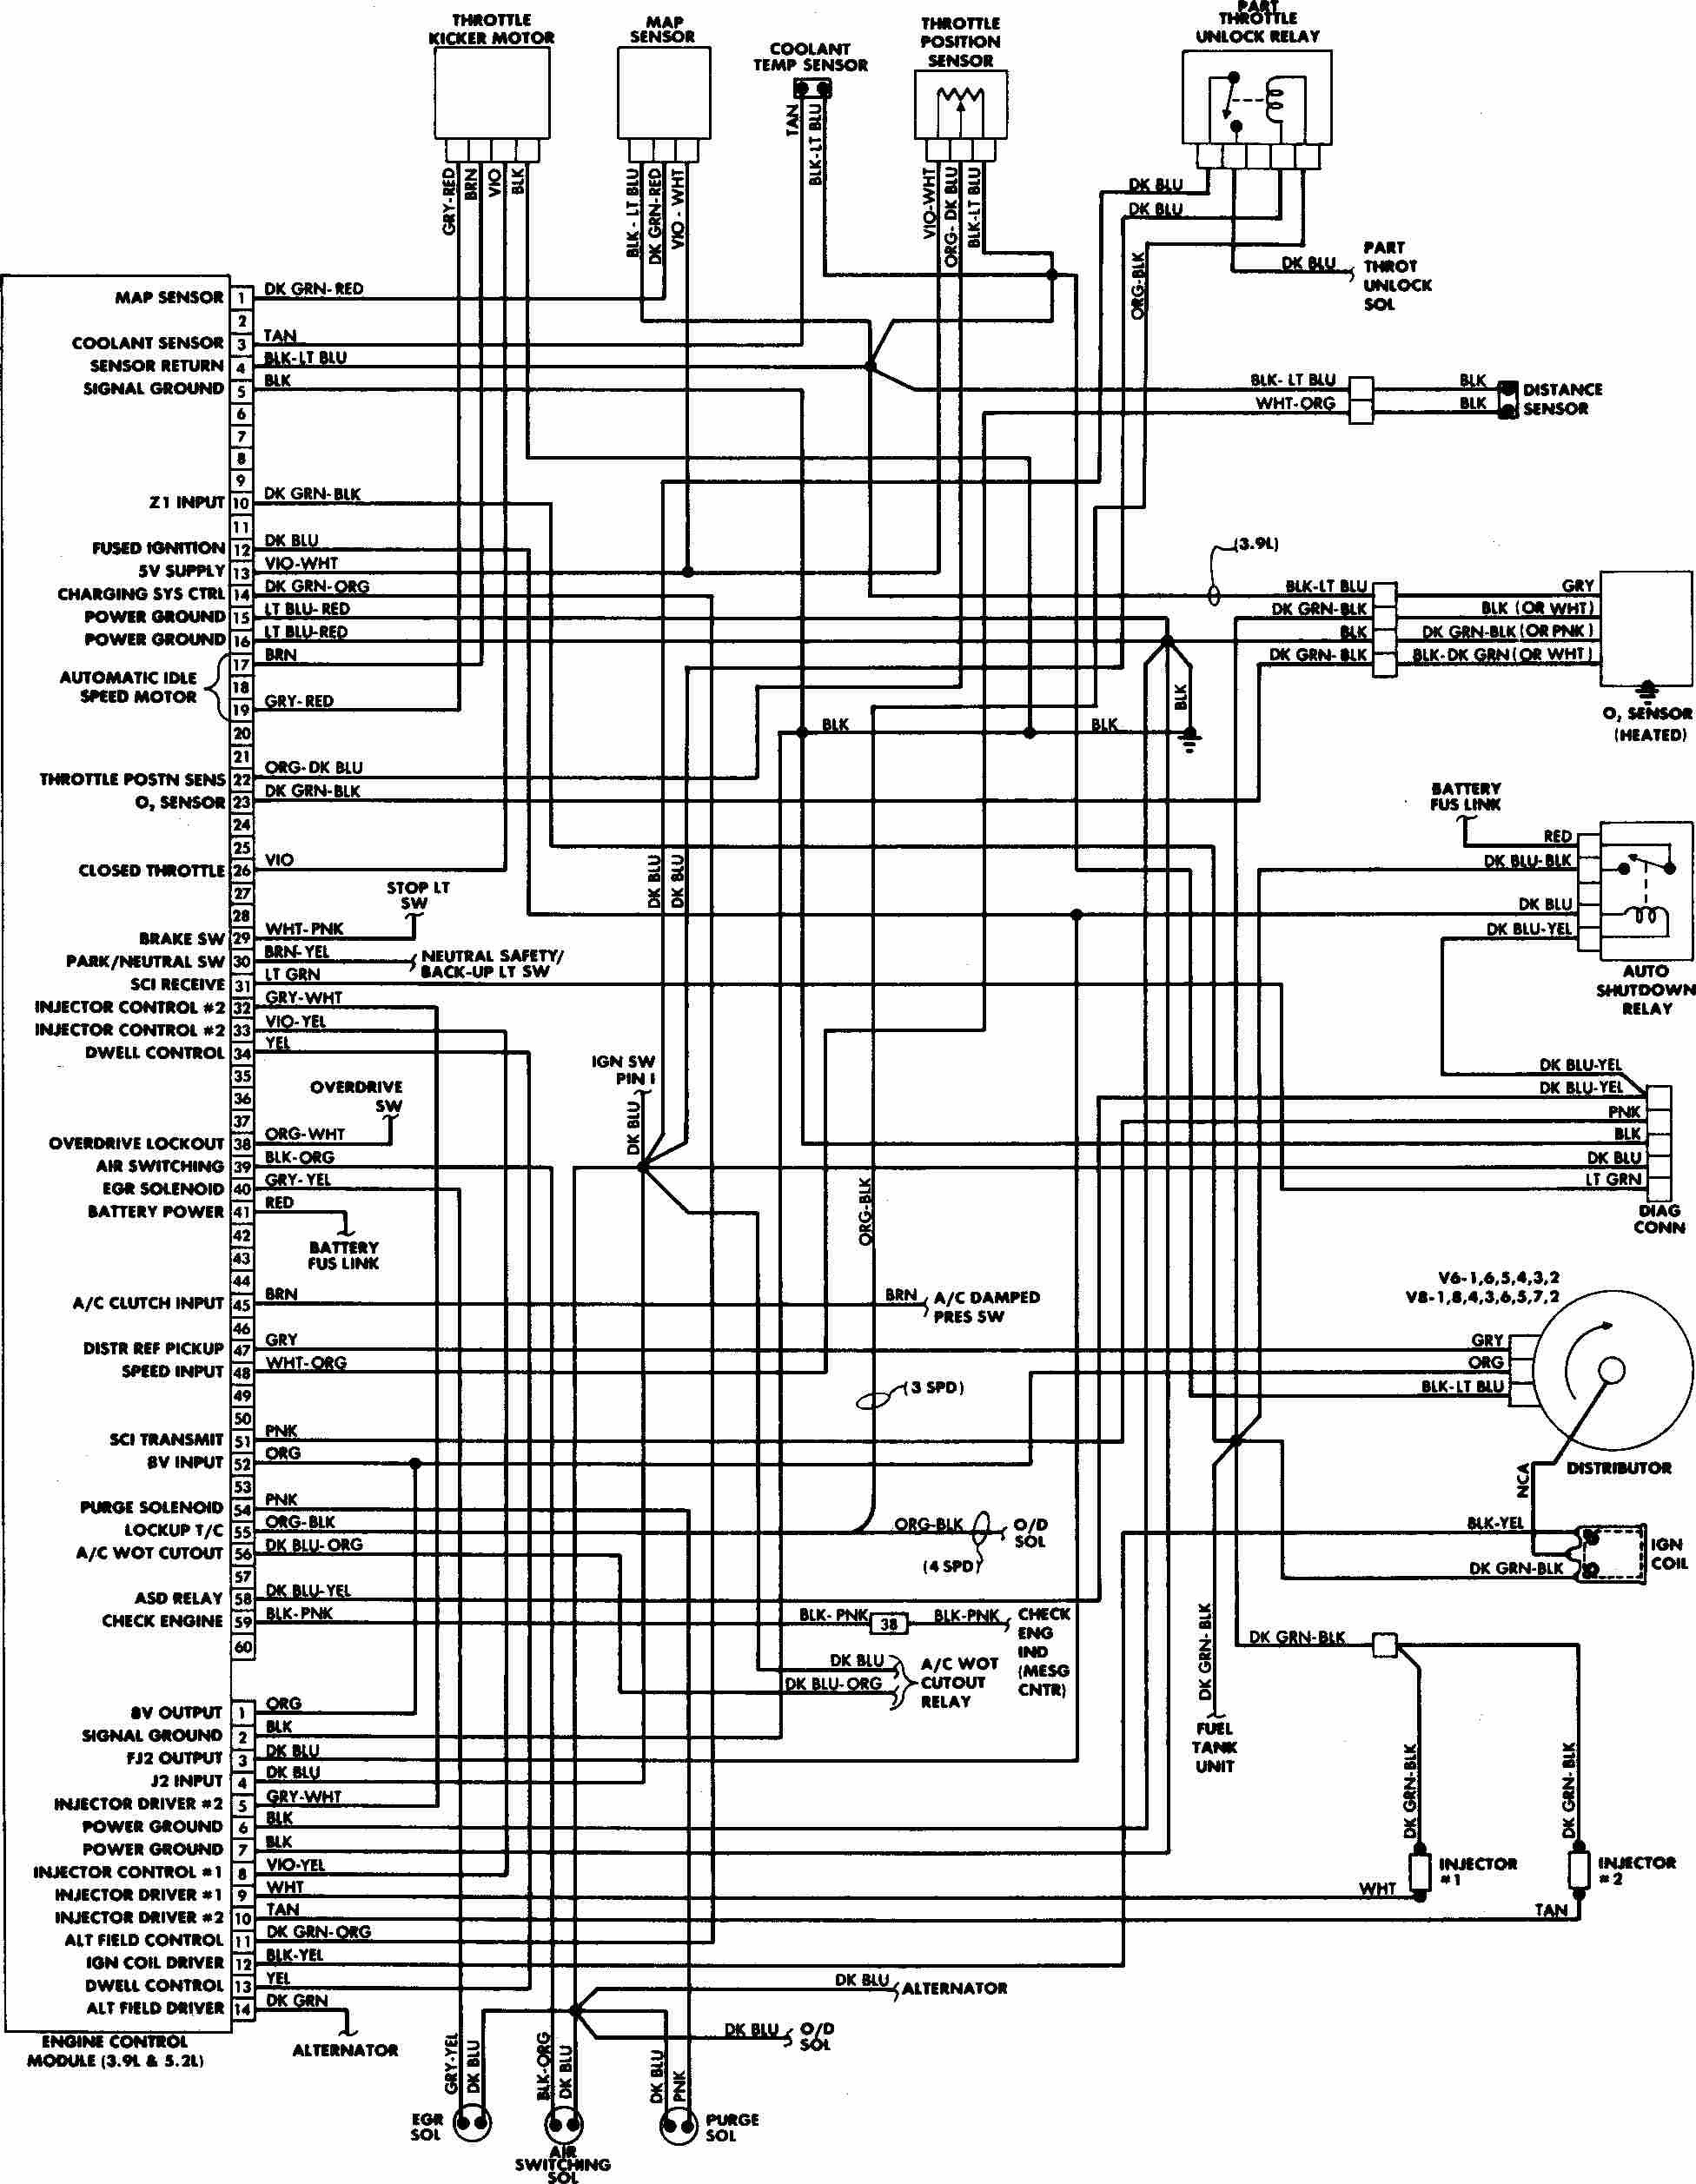 2014 dodge ram wiring diagram